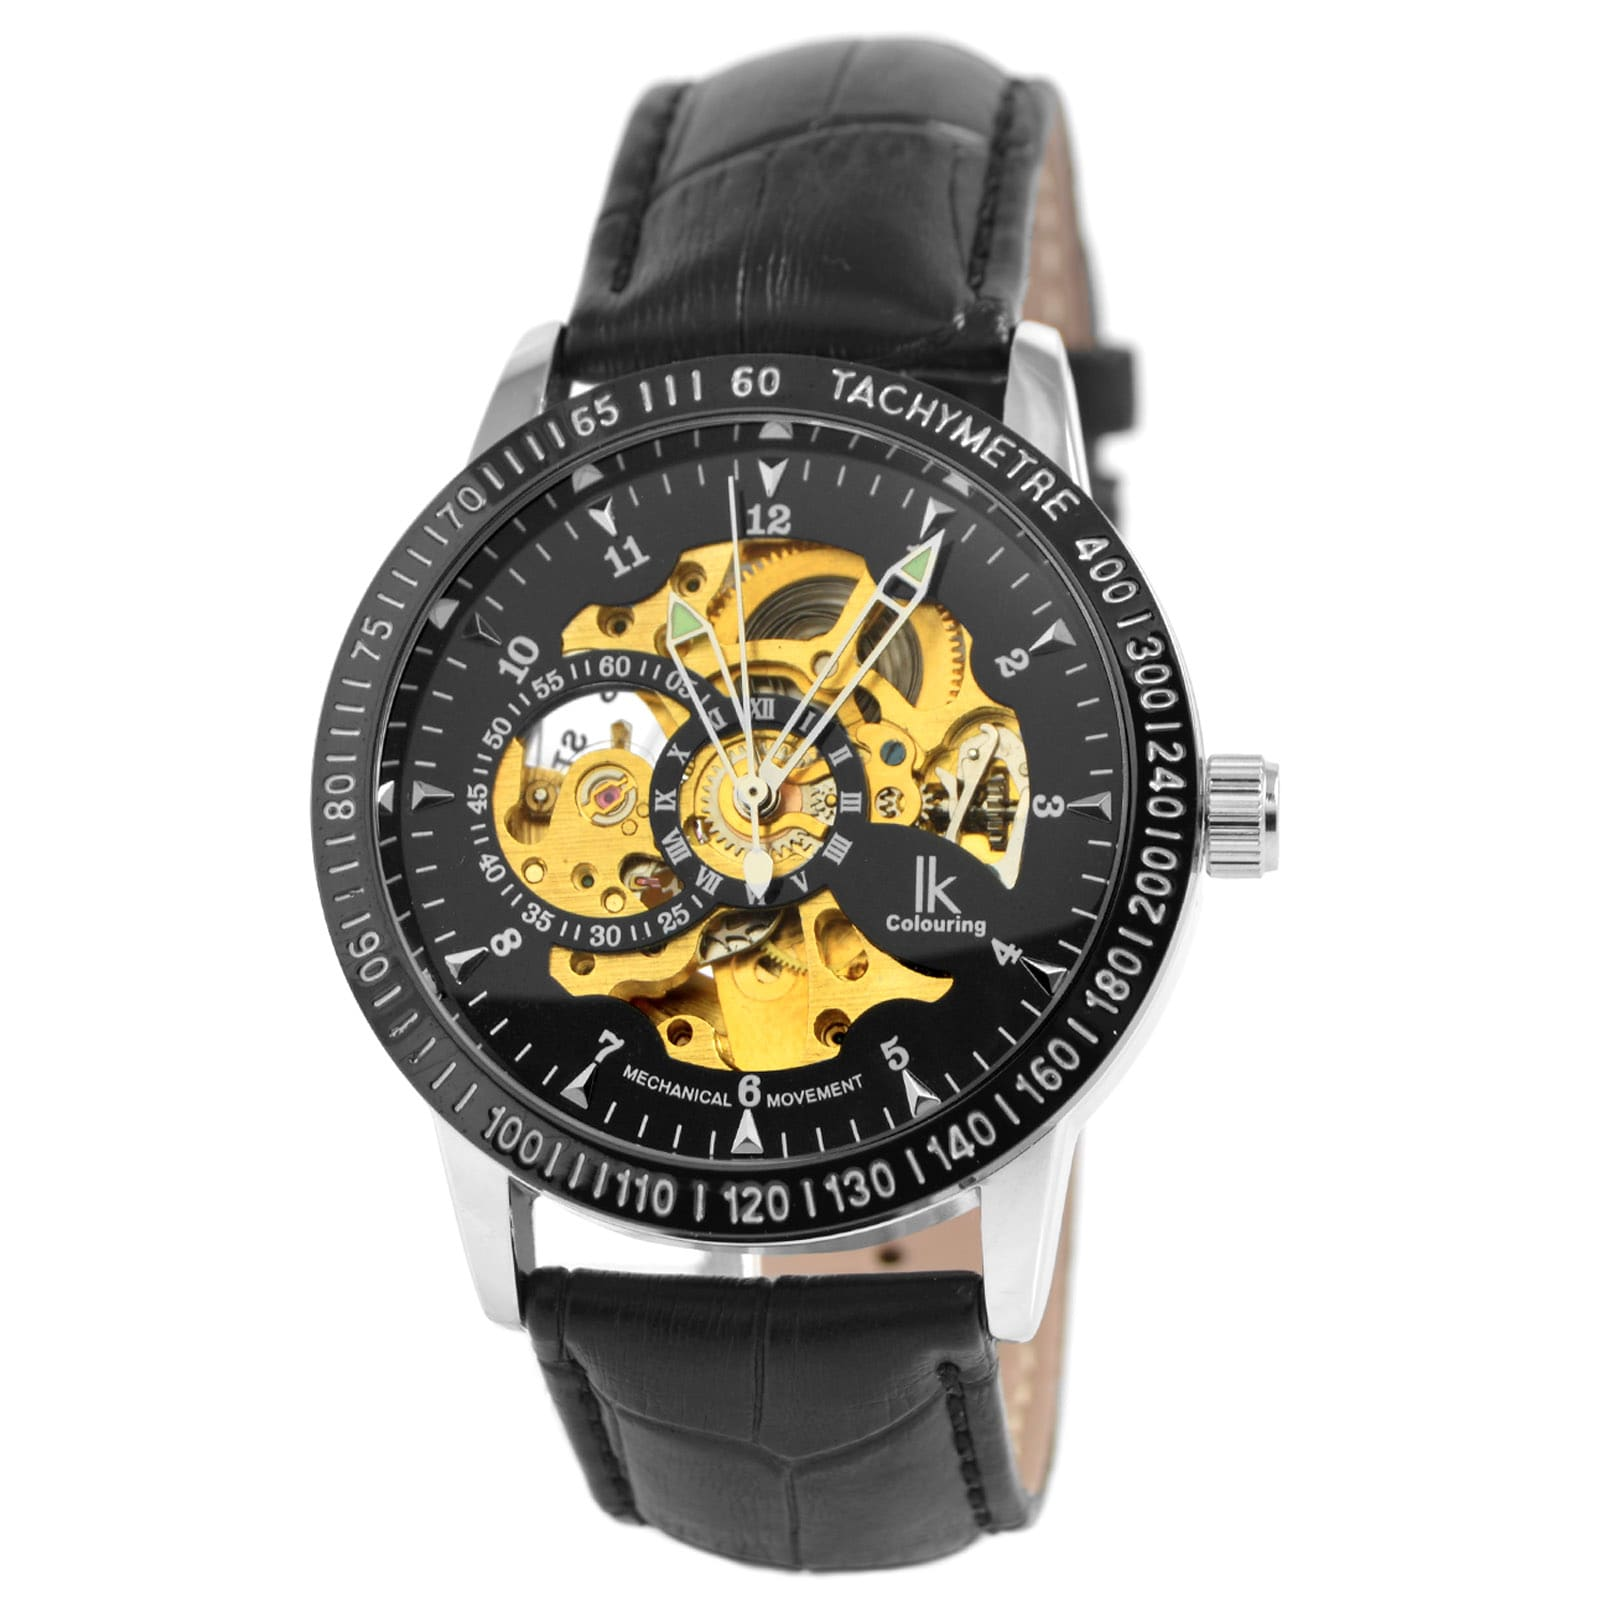 3e5c4977ba9 Black Leather Rolat Watch | IK Colouring | In stock!